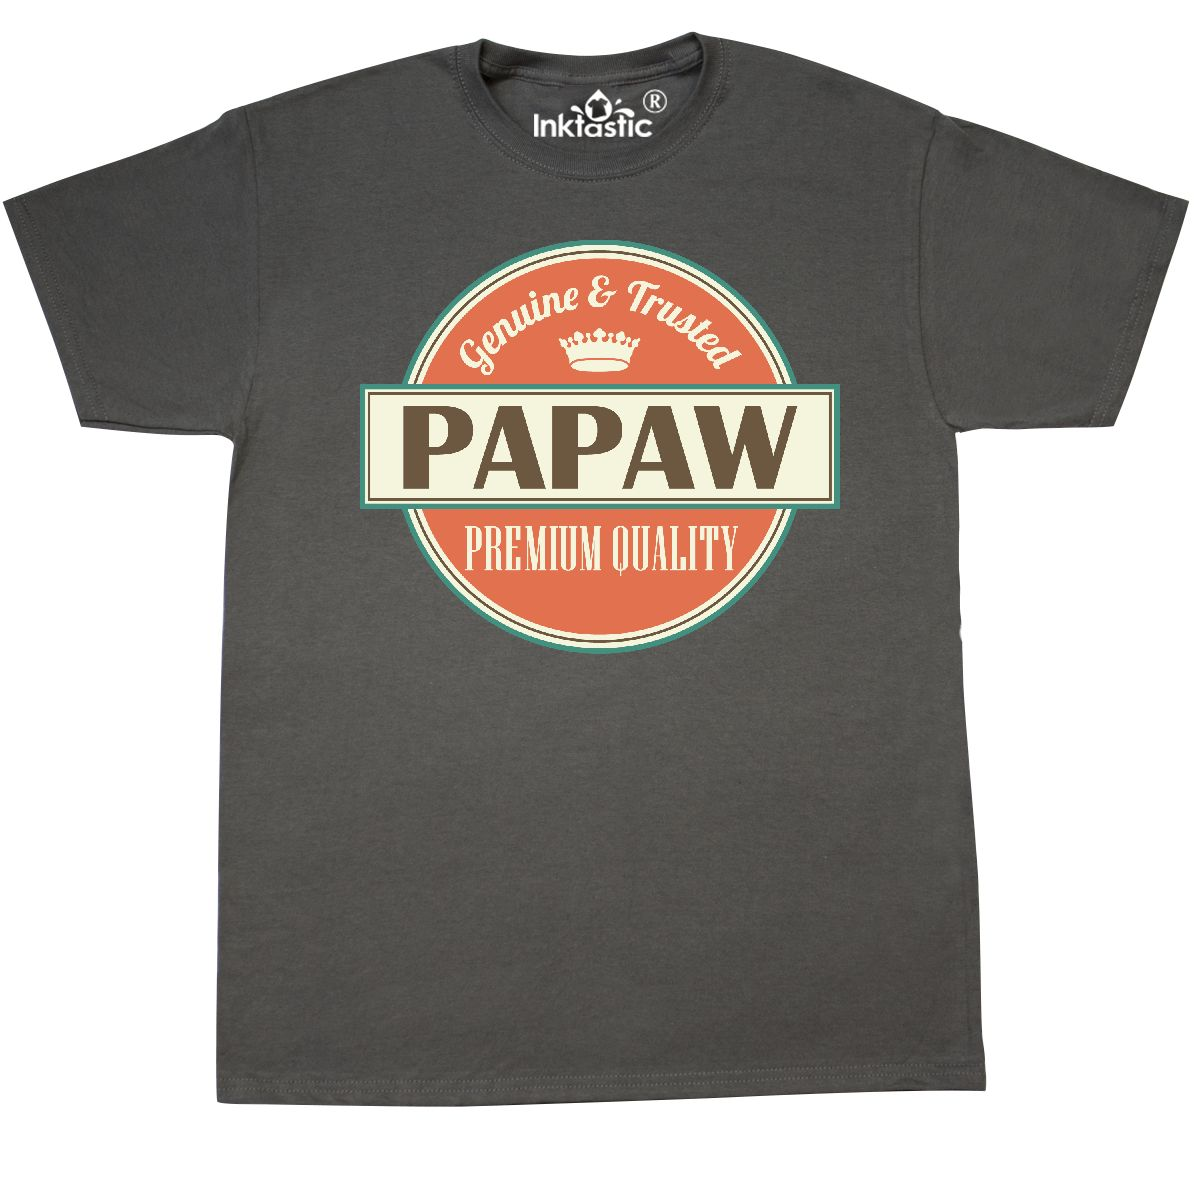 Inktastic-Papaw-Grandpa-Fathers-Day-T-Shirt-Mens-Gift-For-Him-Vintage-Adult-Tees